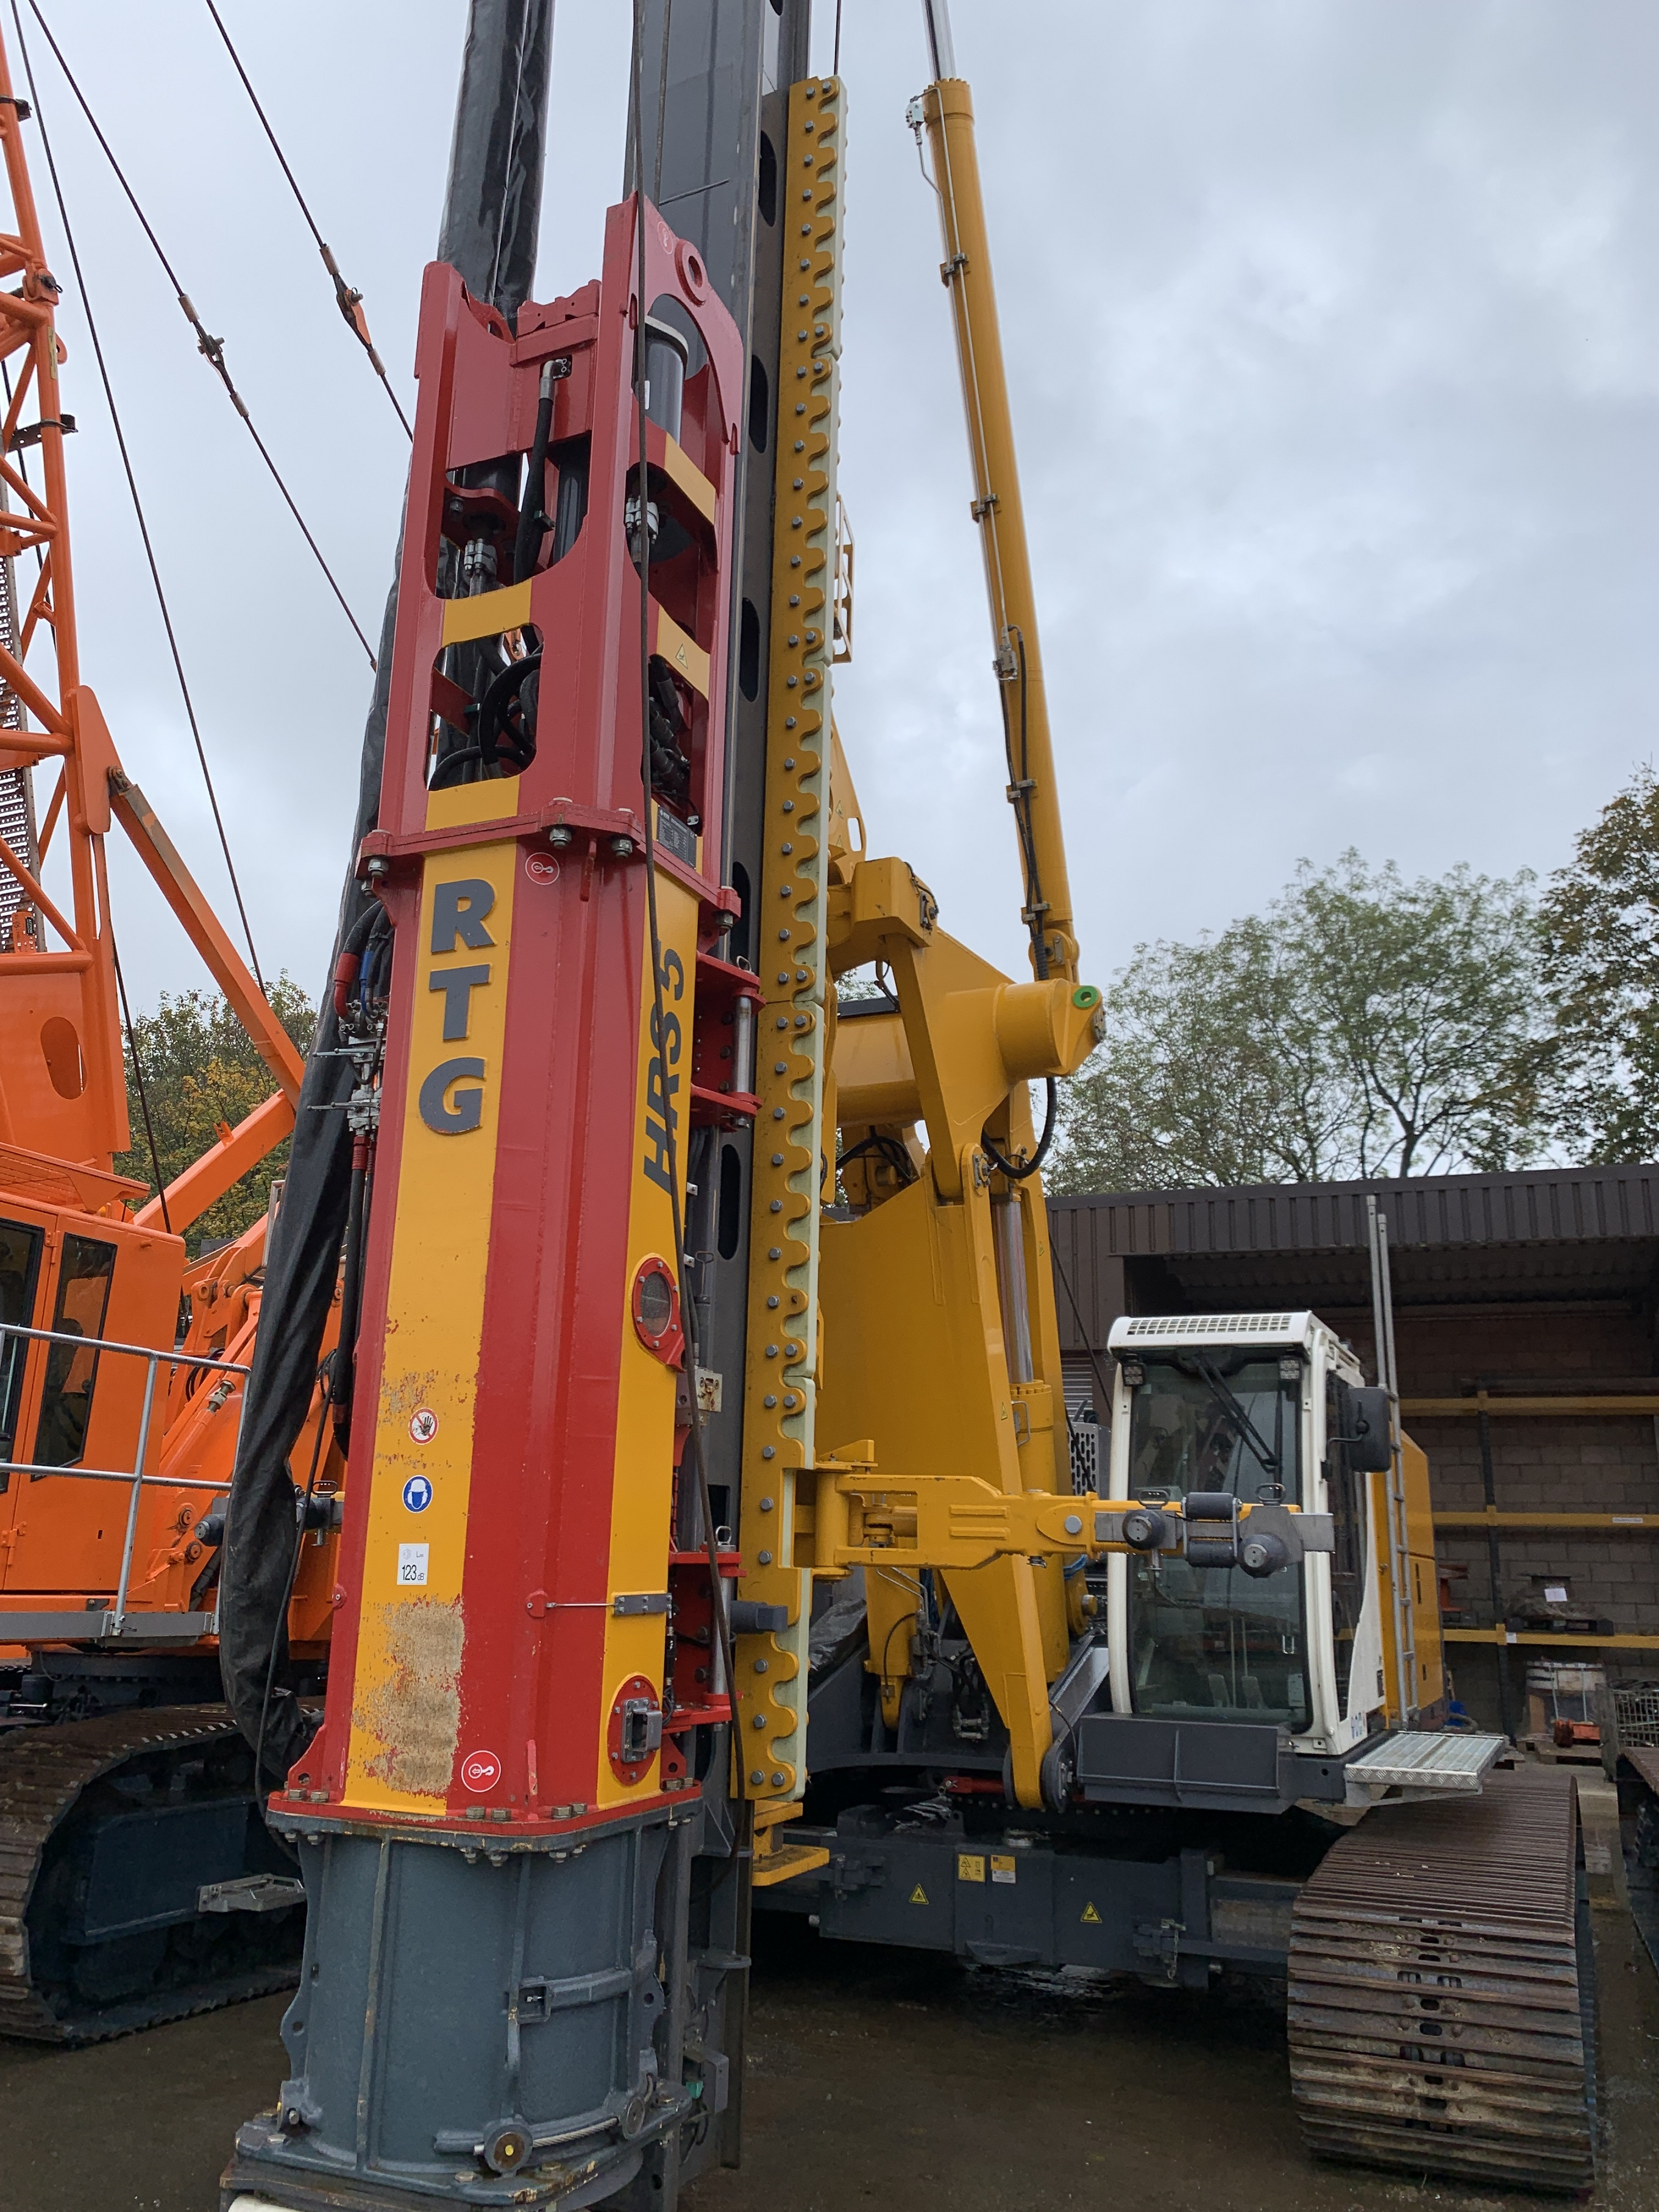 Used RTG RM20 pile driving rig for sale